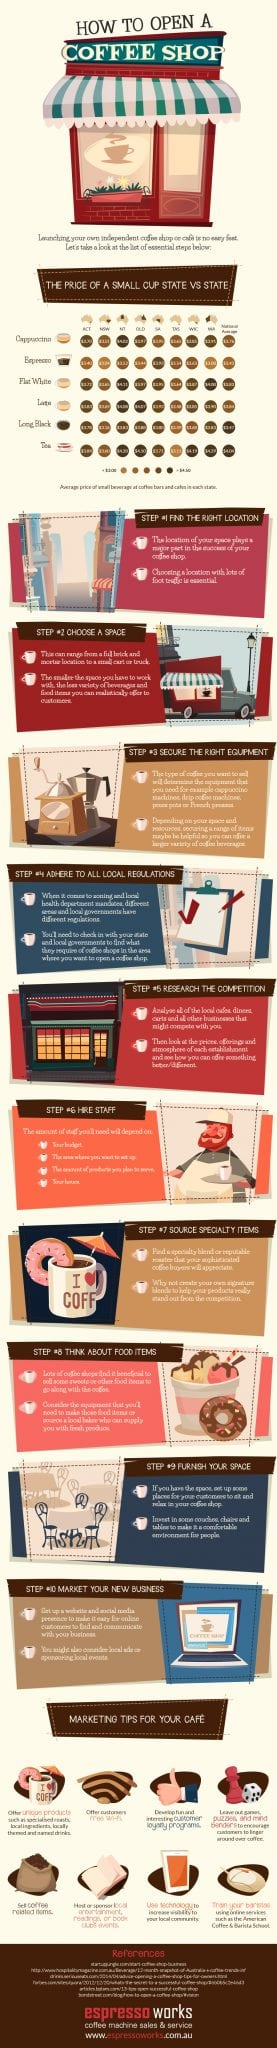 Photo of How to Open a Coffee Shop [INFOGRAPHIC]